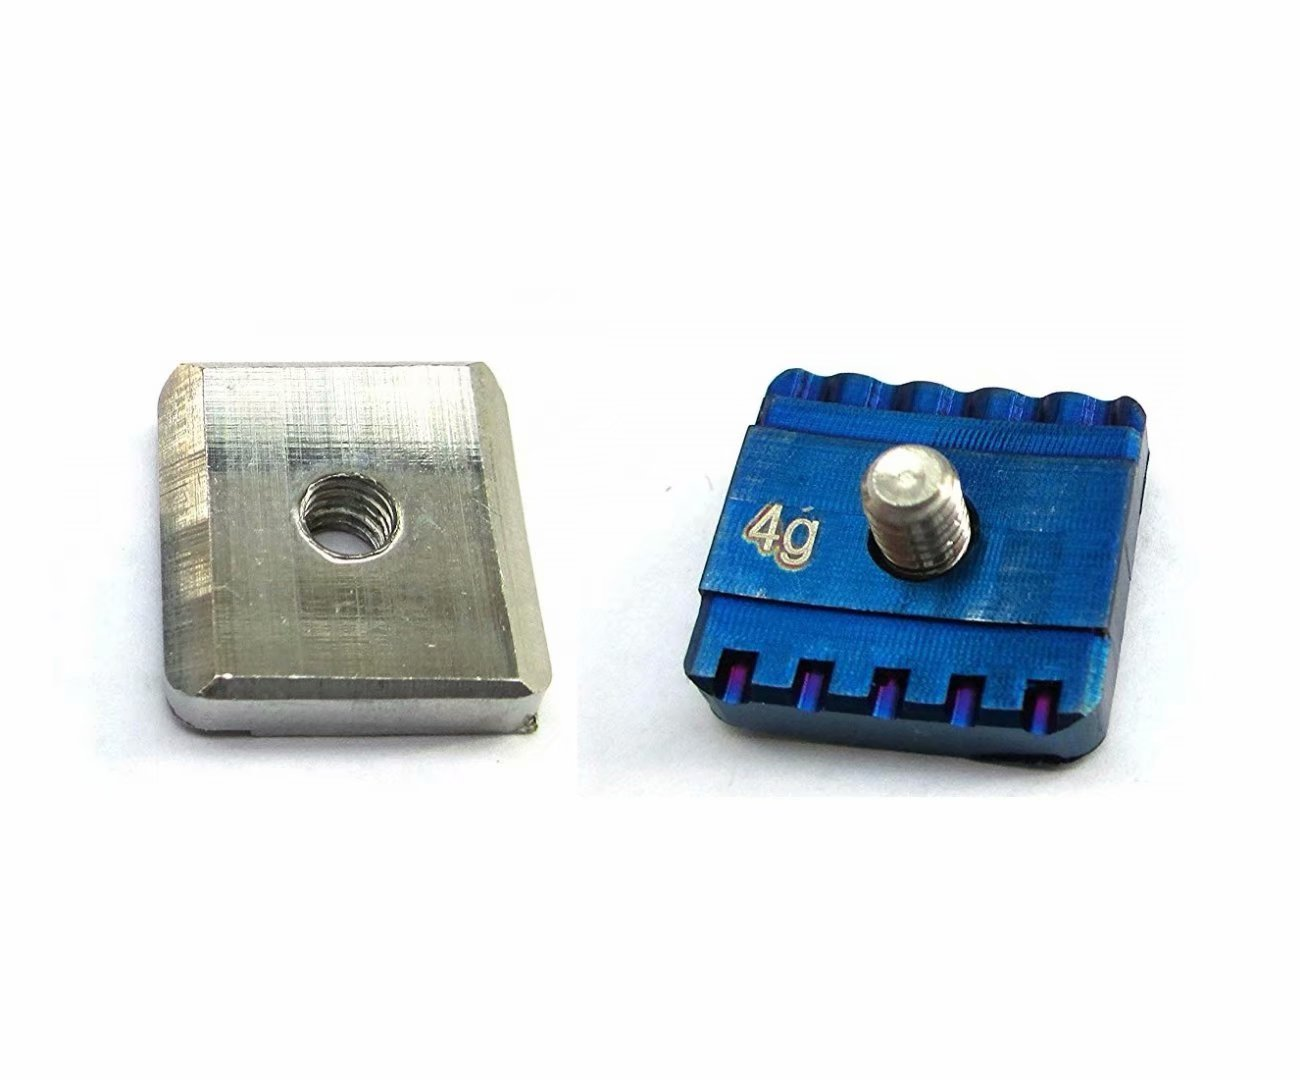 NEW! Movable Weight 10g Blue Set Sliding Weight For Taylormade SLDR Golf Driver Club by XIAMI (Image #1)